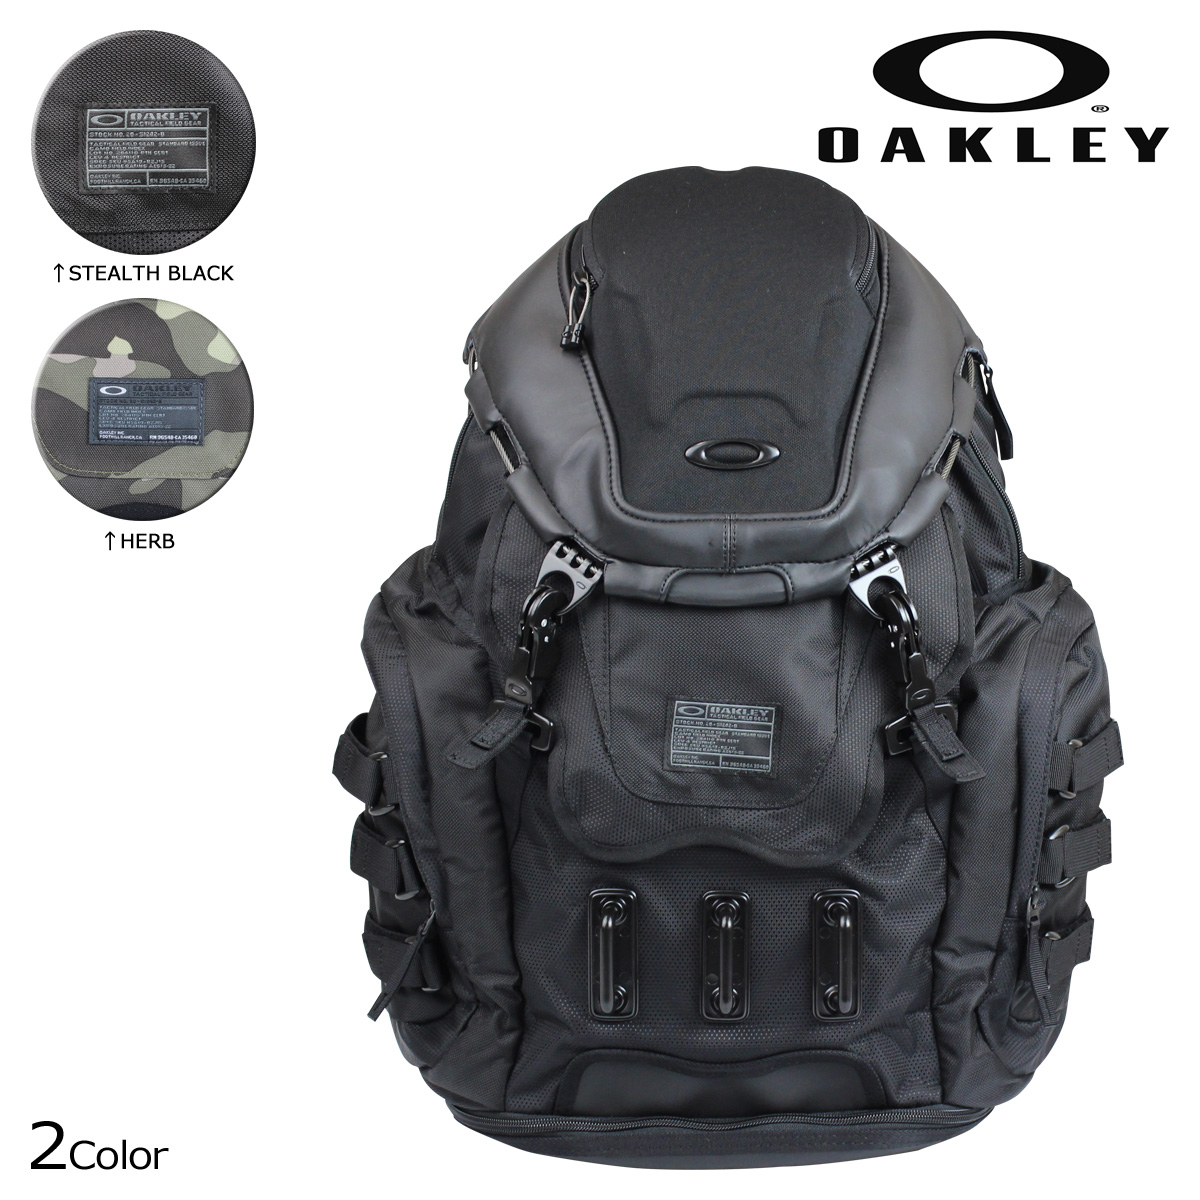 Oakley The Kitchen Sink Allsports rakuten global market oakley oakley mens backpack allsports rakuten global market oakley oakley mens backpack rucksack 92060a kitchen sink 99 new in stock workwithnaturefo